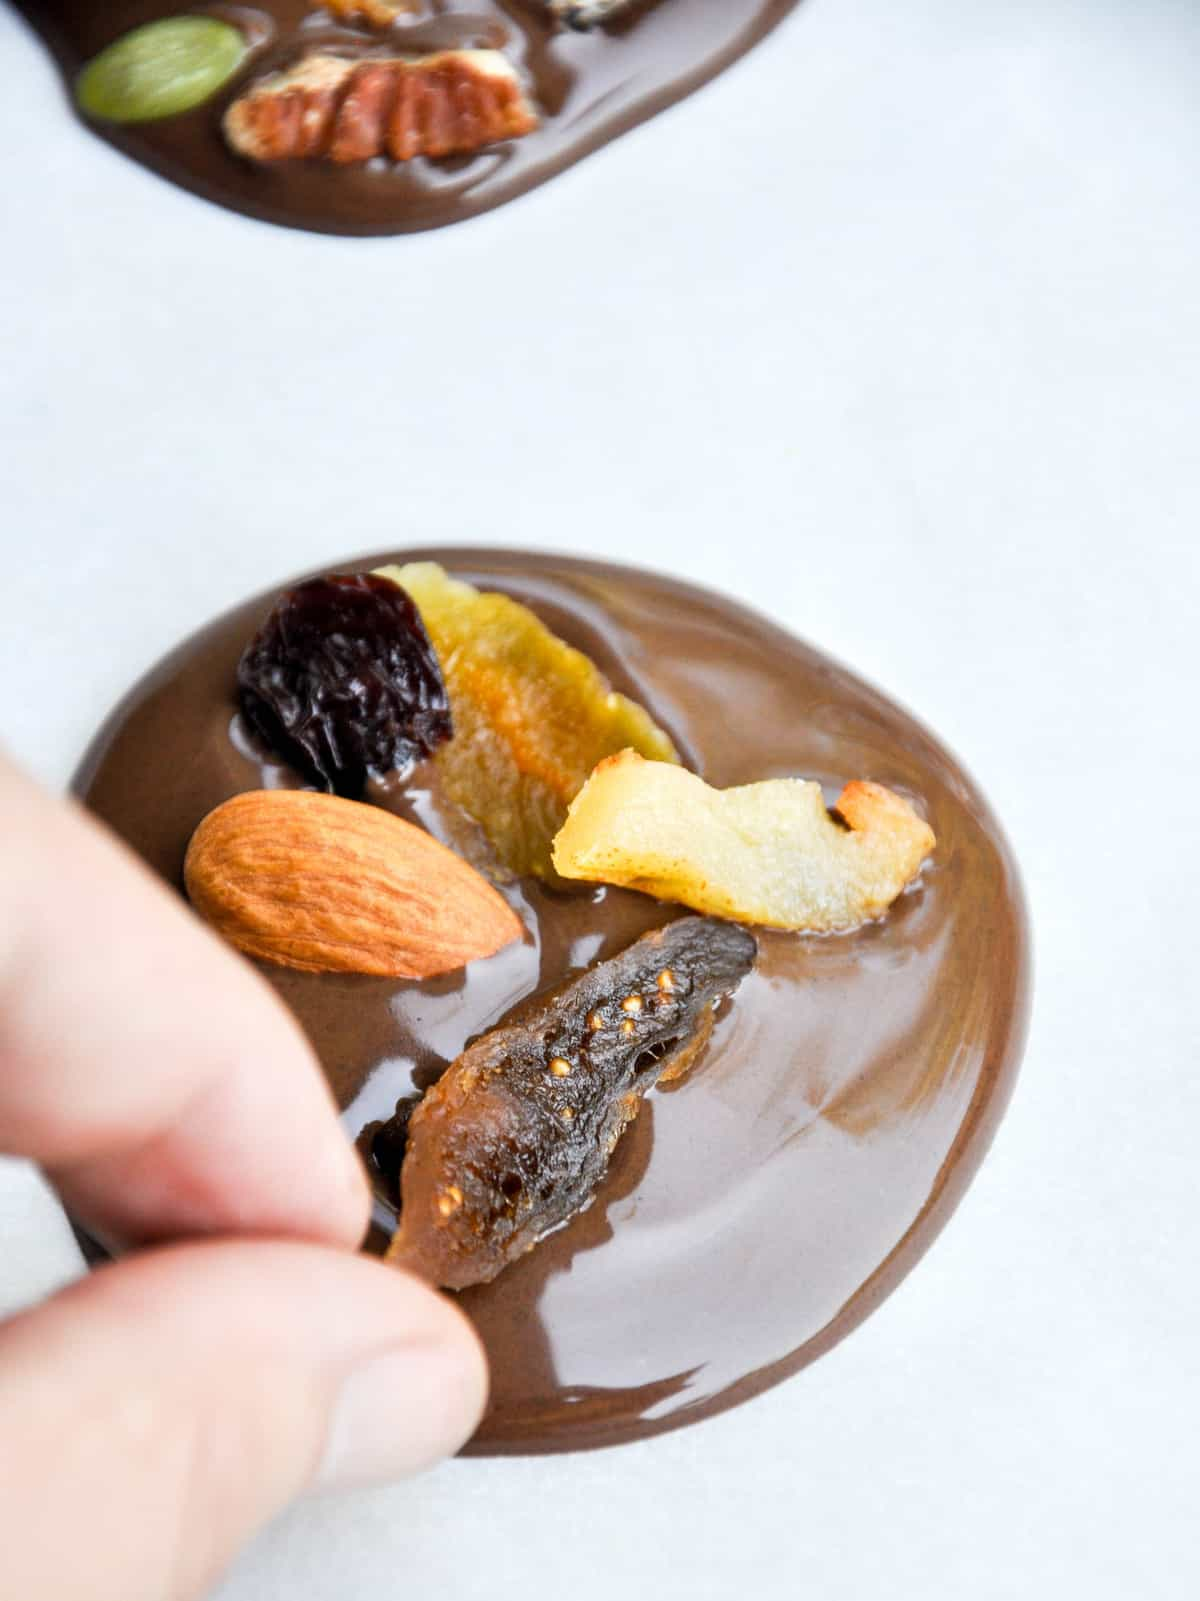 Adding dried fruit and nuts to chocolate rounds